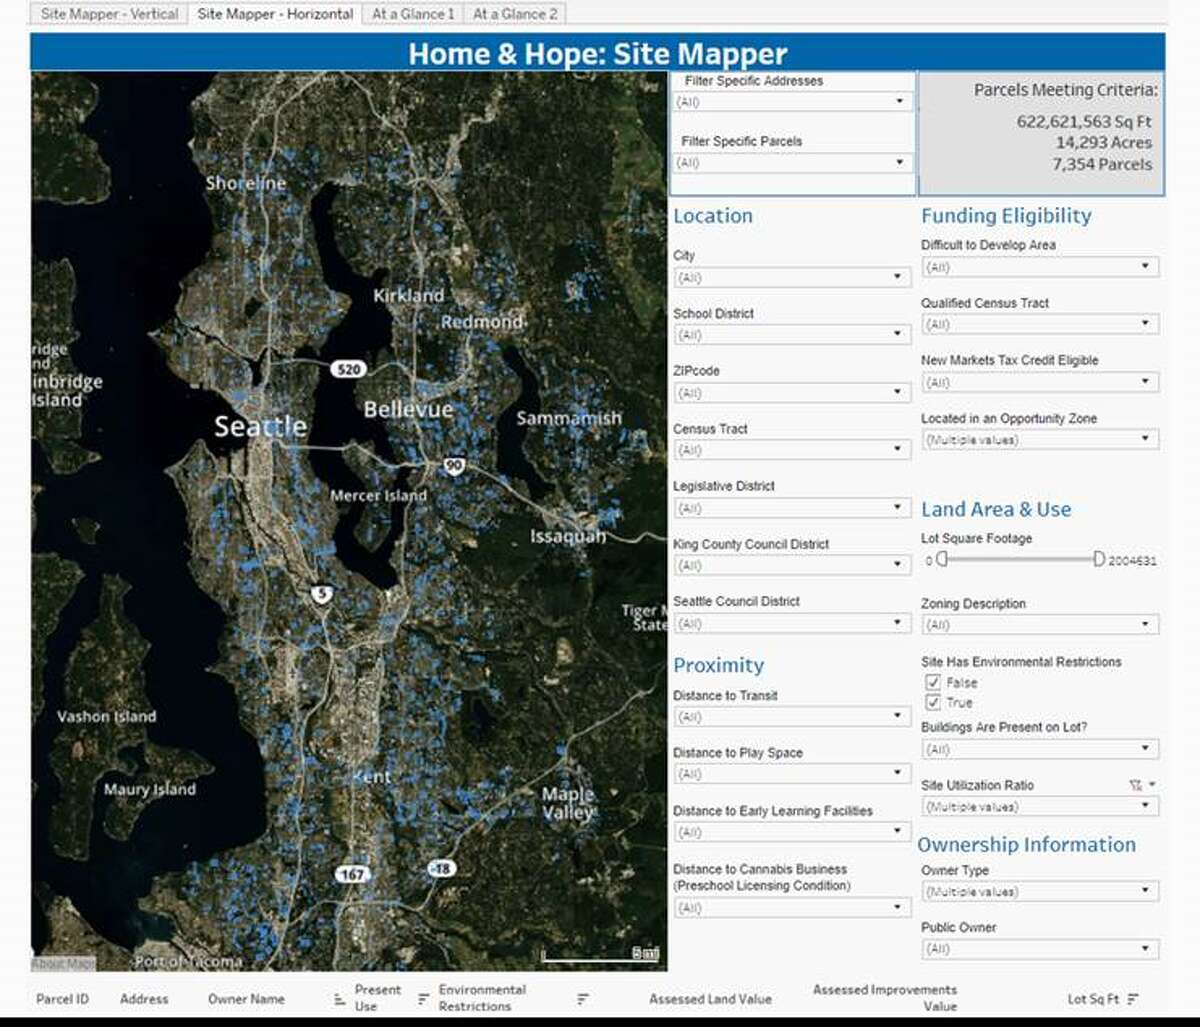 This screenshot shows the Home & Hope tool developed by Enterprise Community Partners to map all the public land in King County. Officials expect to use the tool to find publicly owned sites that could be developed into affordable housing.